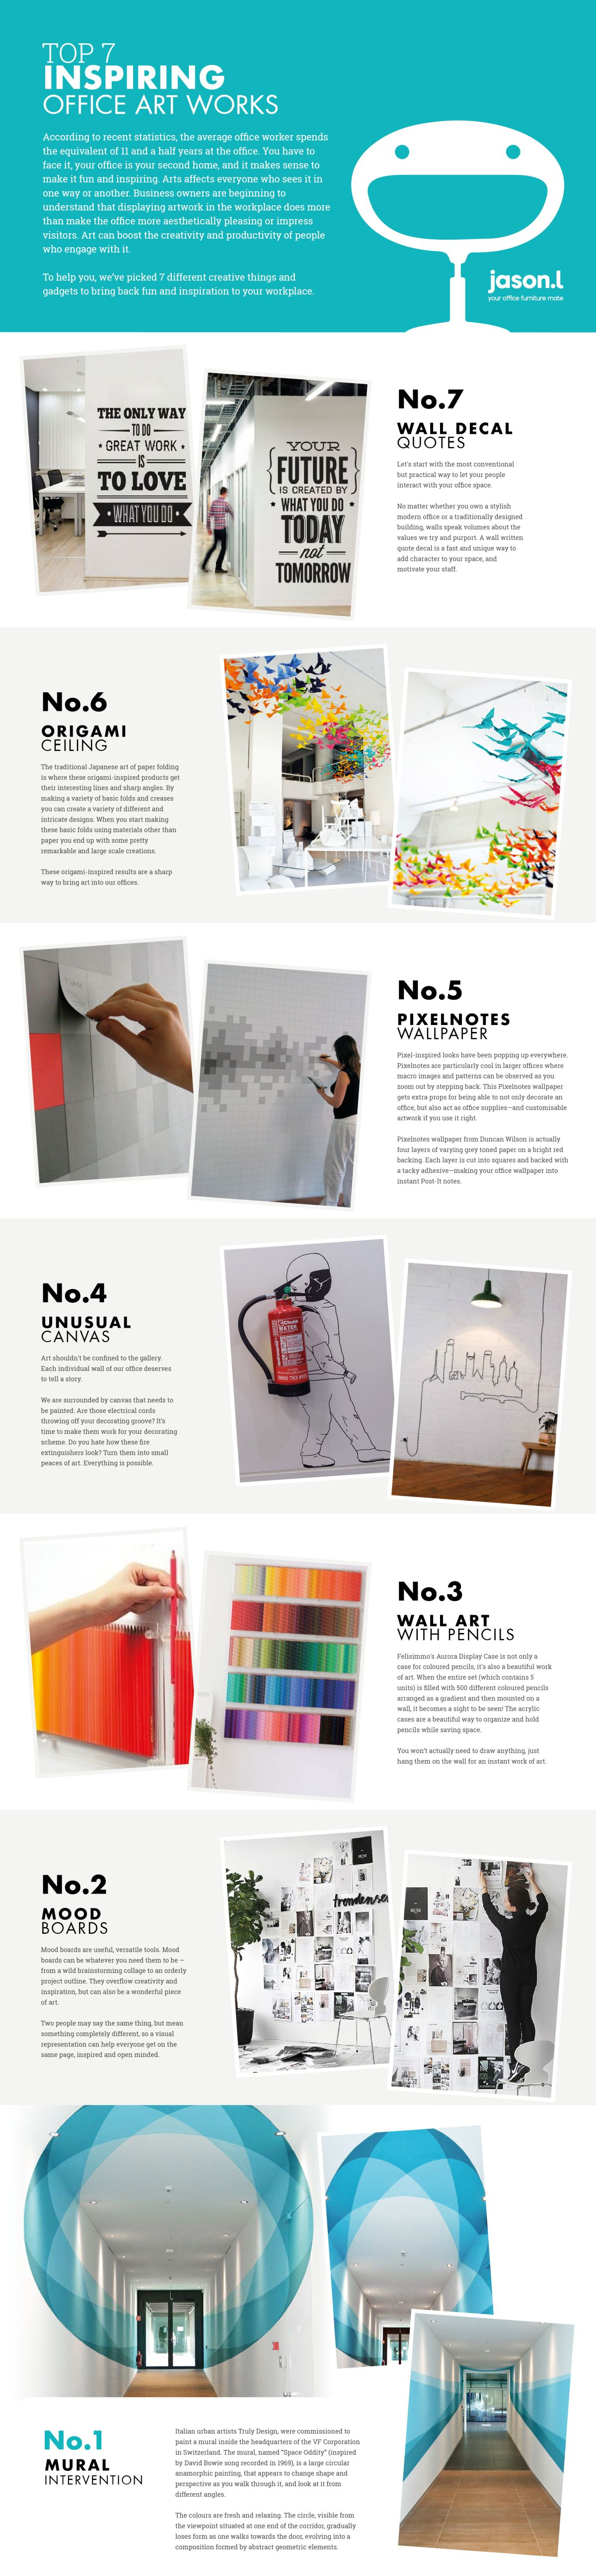 Inspiring Office Artworks Infographic